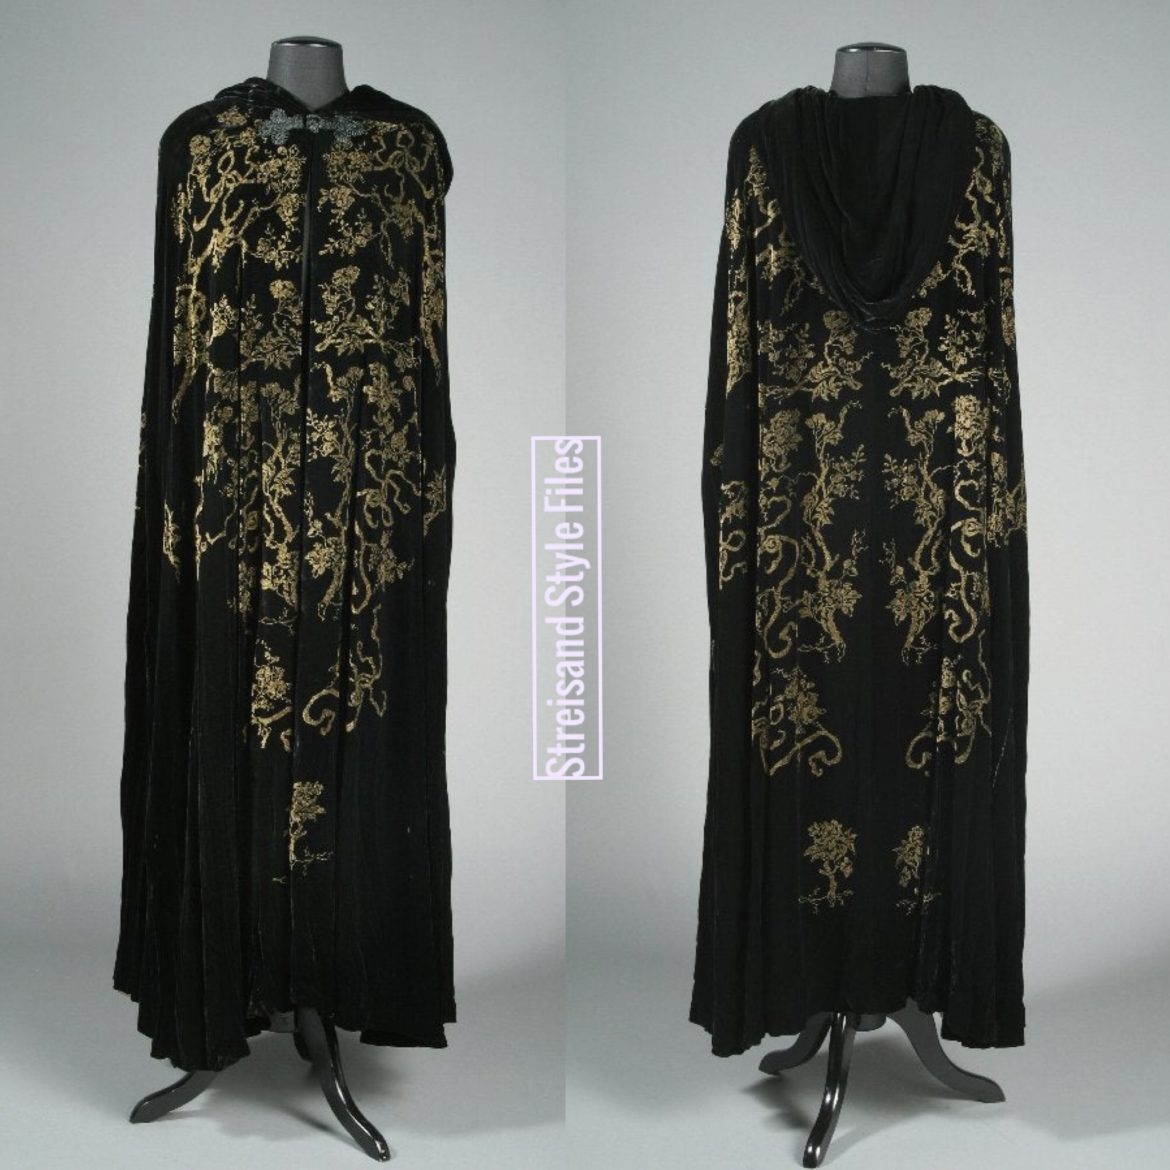 A Raffaela Schirmer Cape From Barbra's Personal Collection